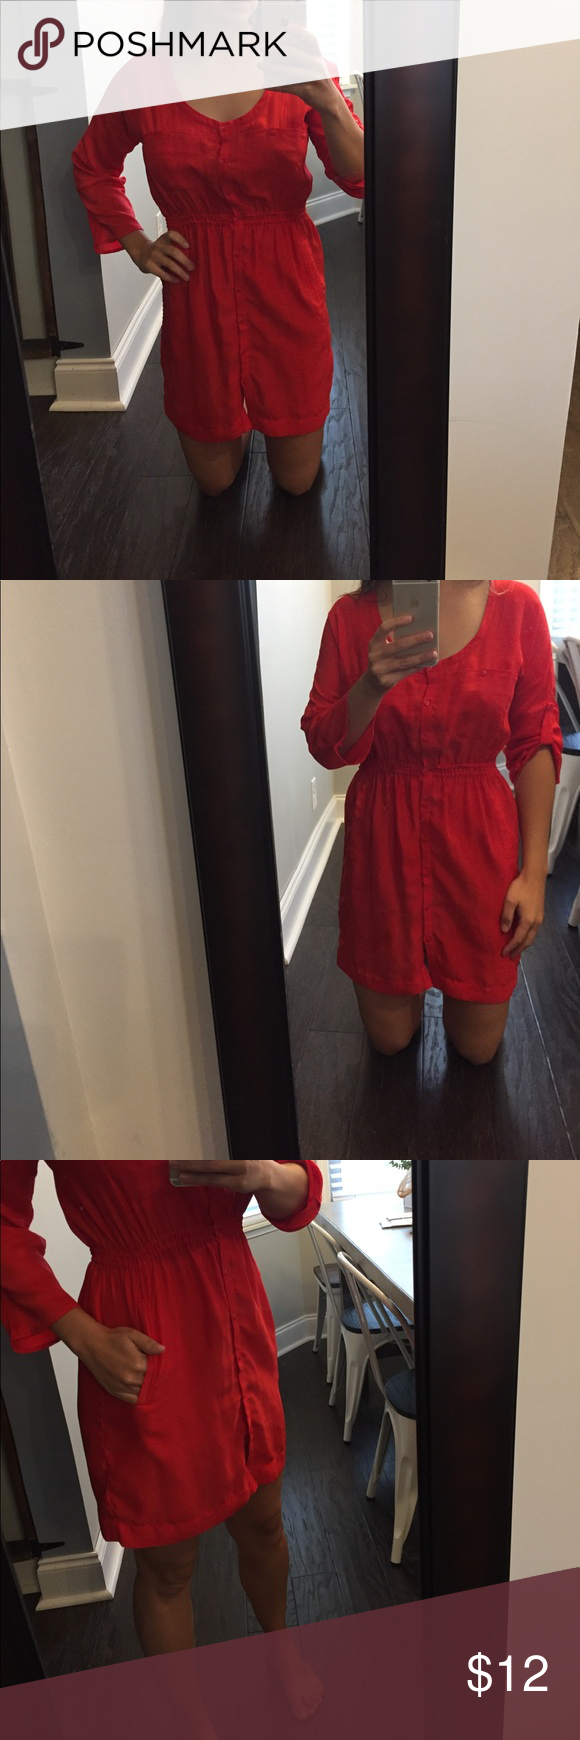 Mini dress mini dresses urban outfitters and urban outfitters dress